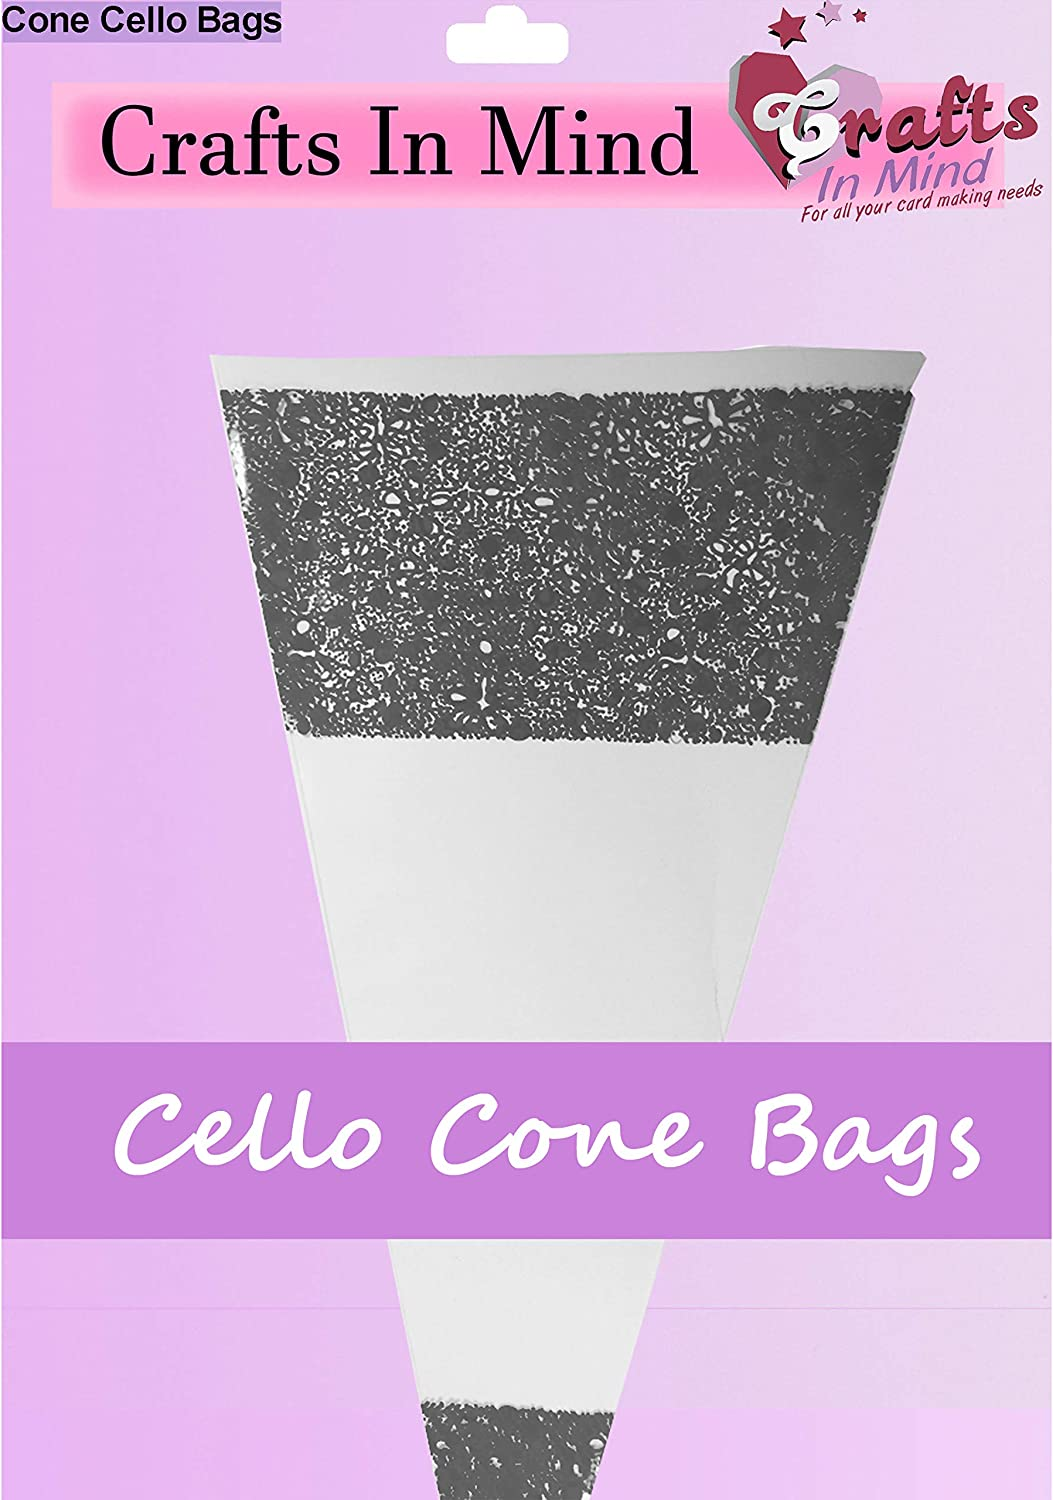 Black Cone Cello Bags   High Quality Clear Cellophane   Party Sweet Bags   Small 16cm x 22cm (Pack of 1000)